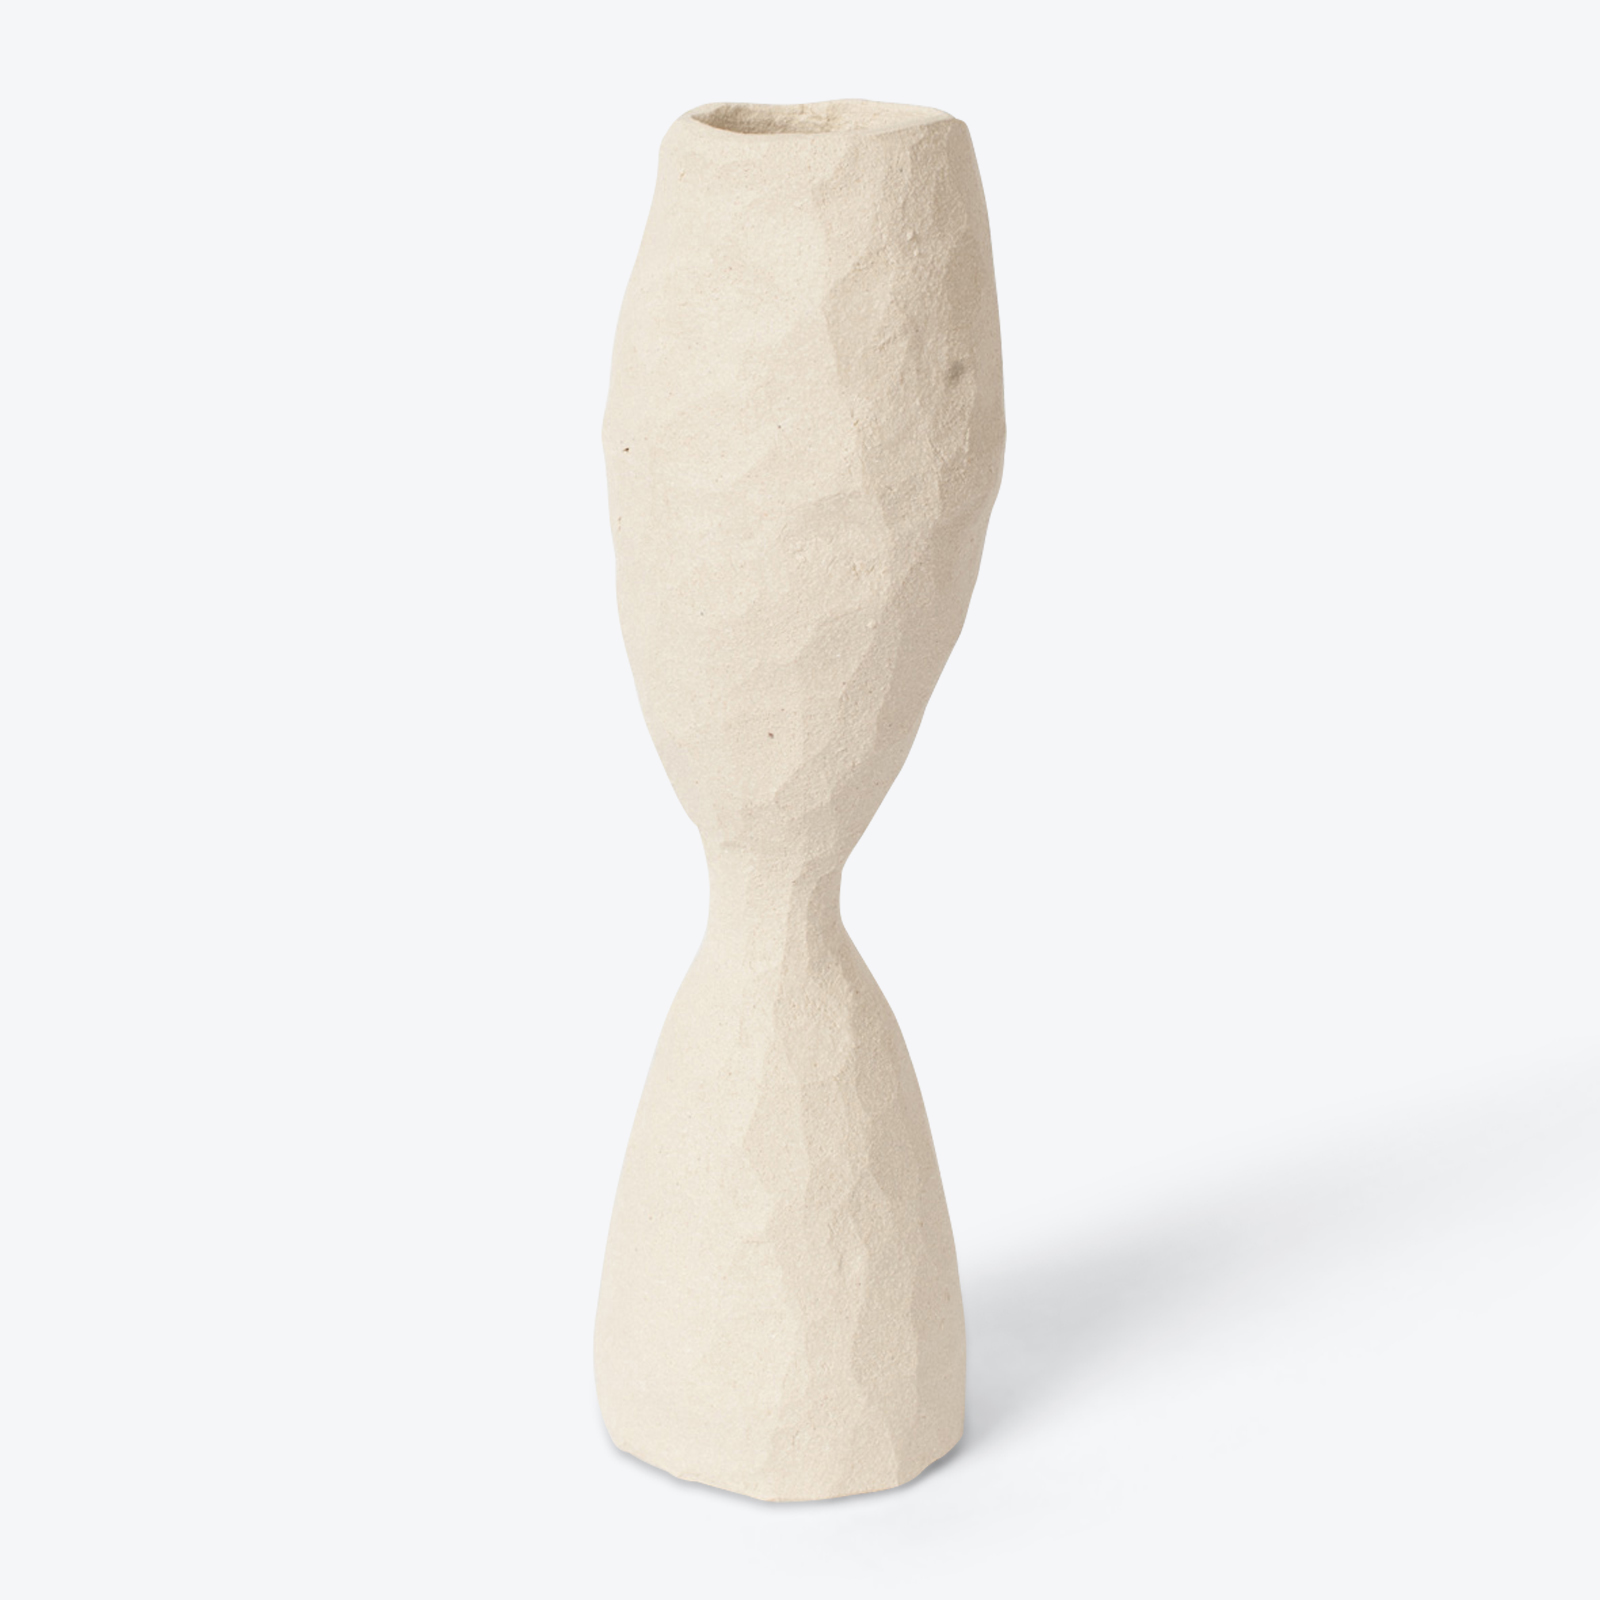 Wide Sentinel Vase In White Clay By Ella Bendrups 01